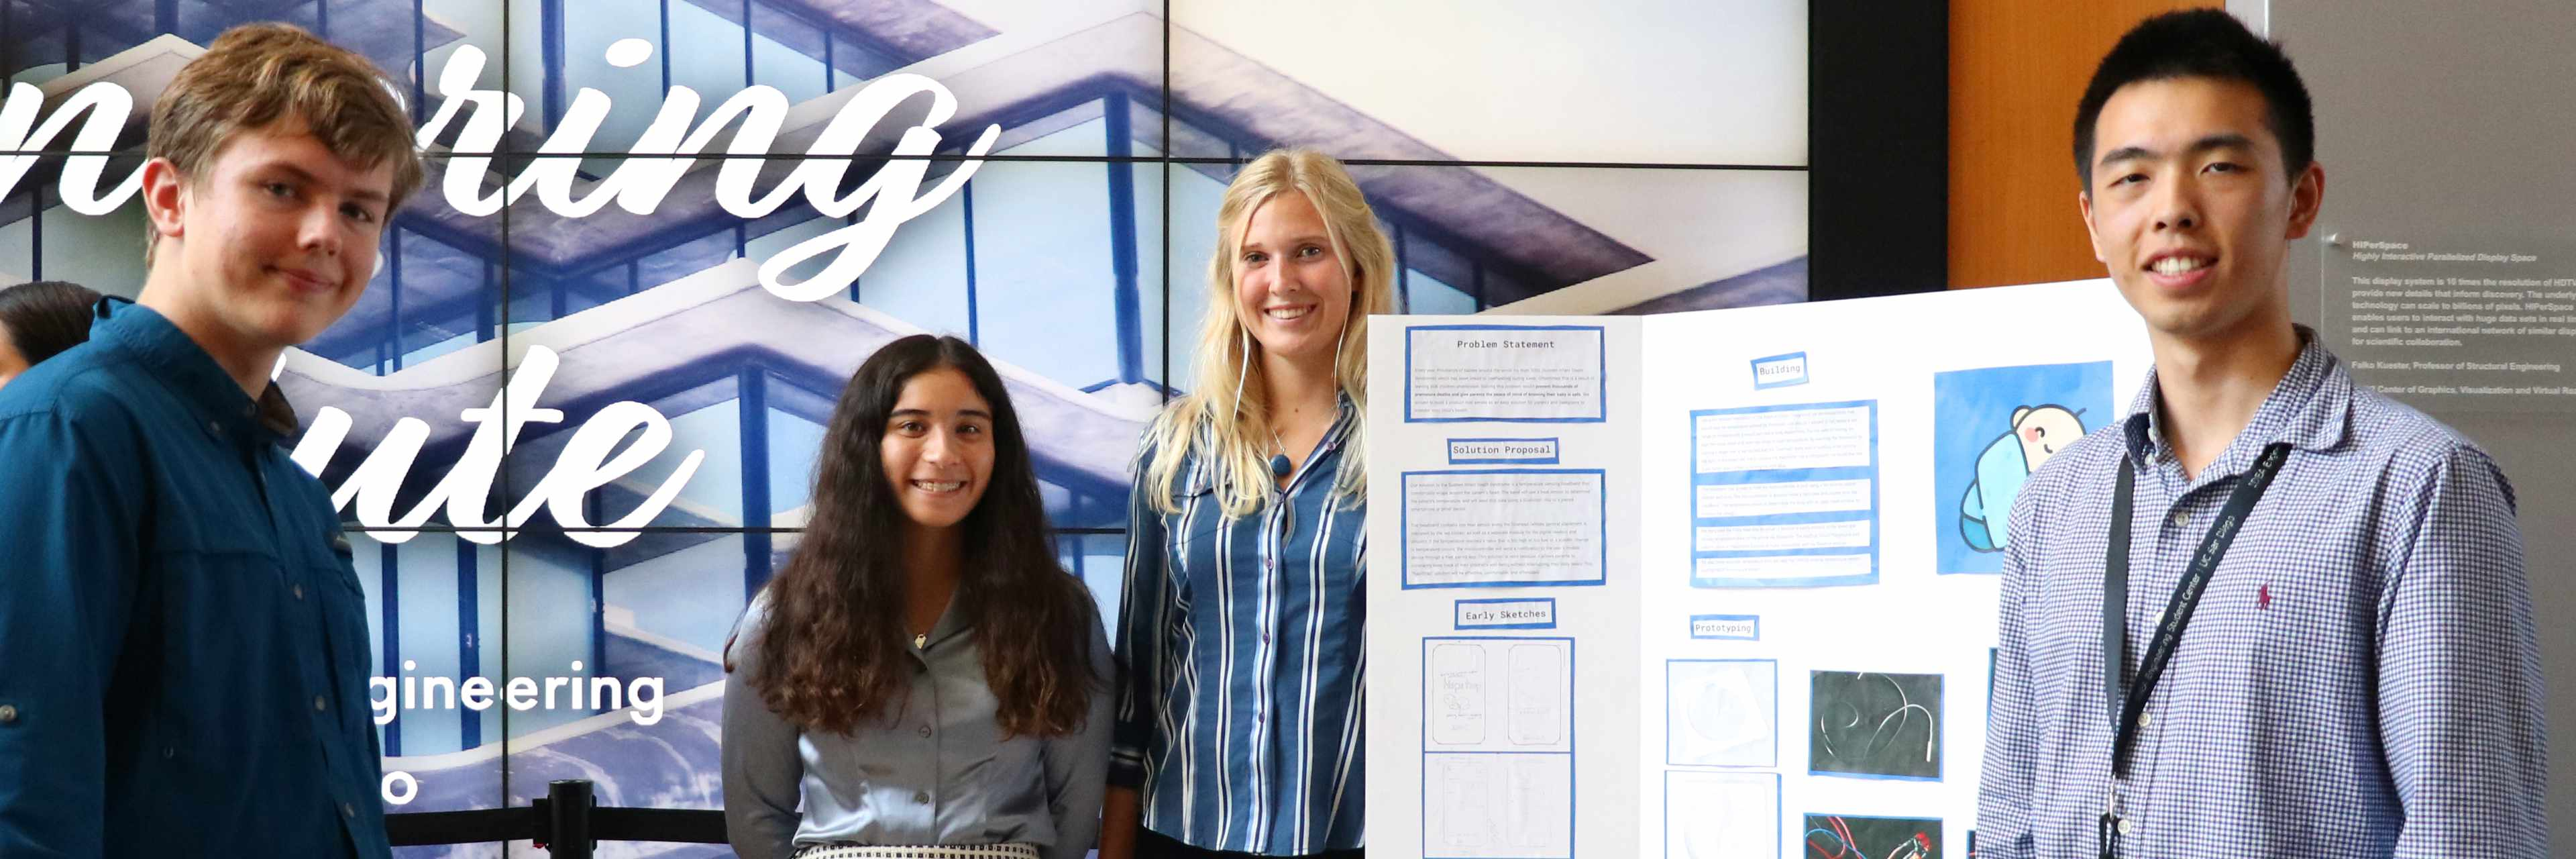 Four students standing next to poster